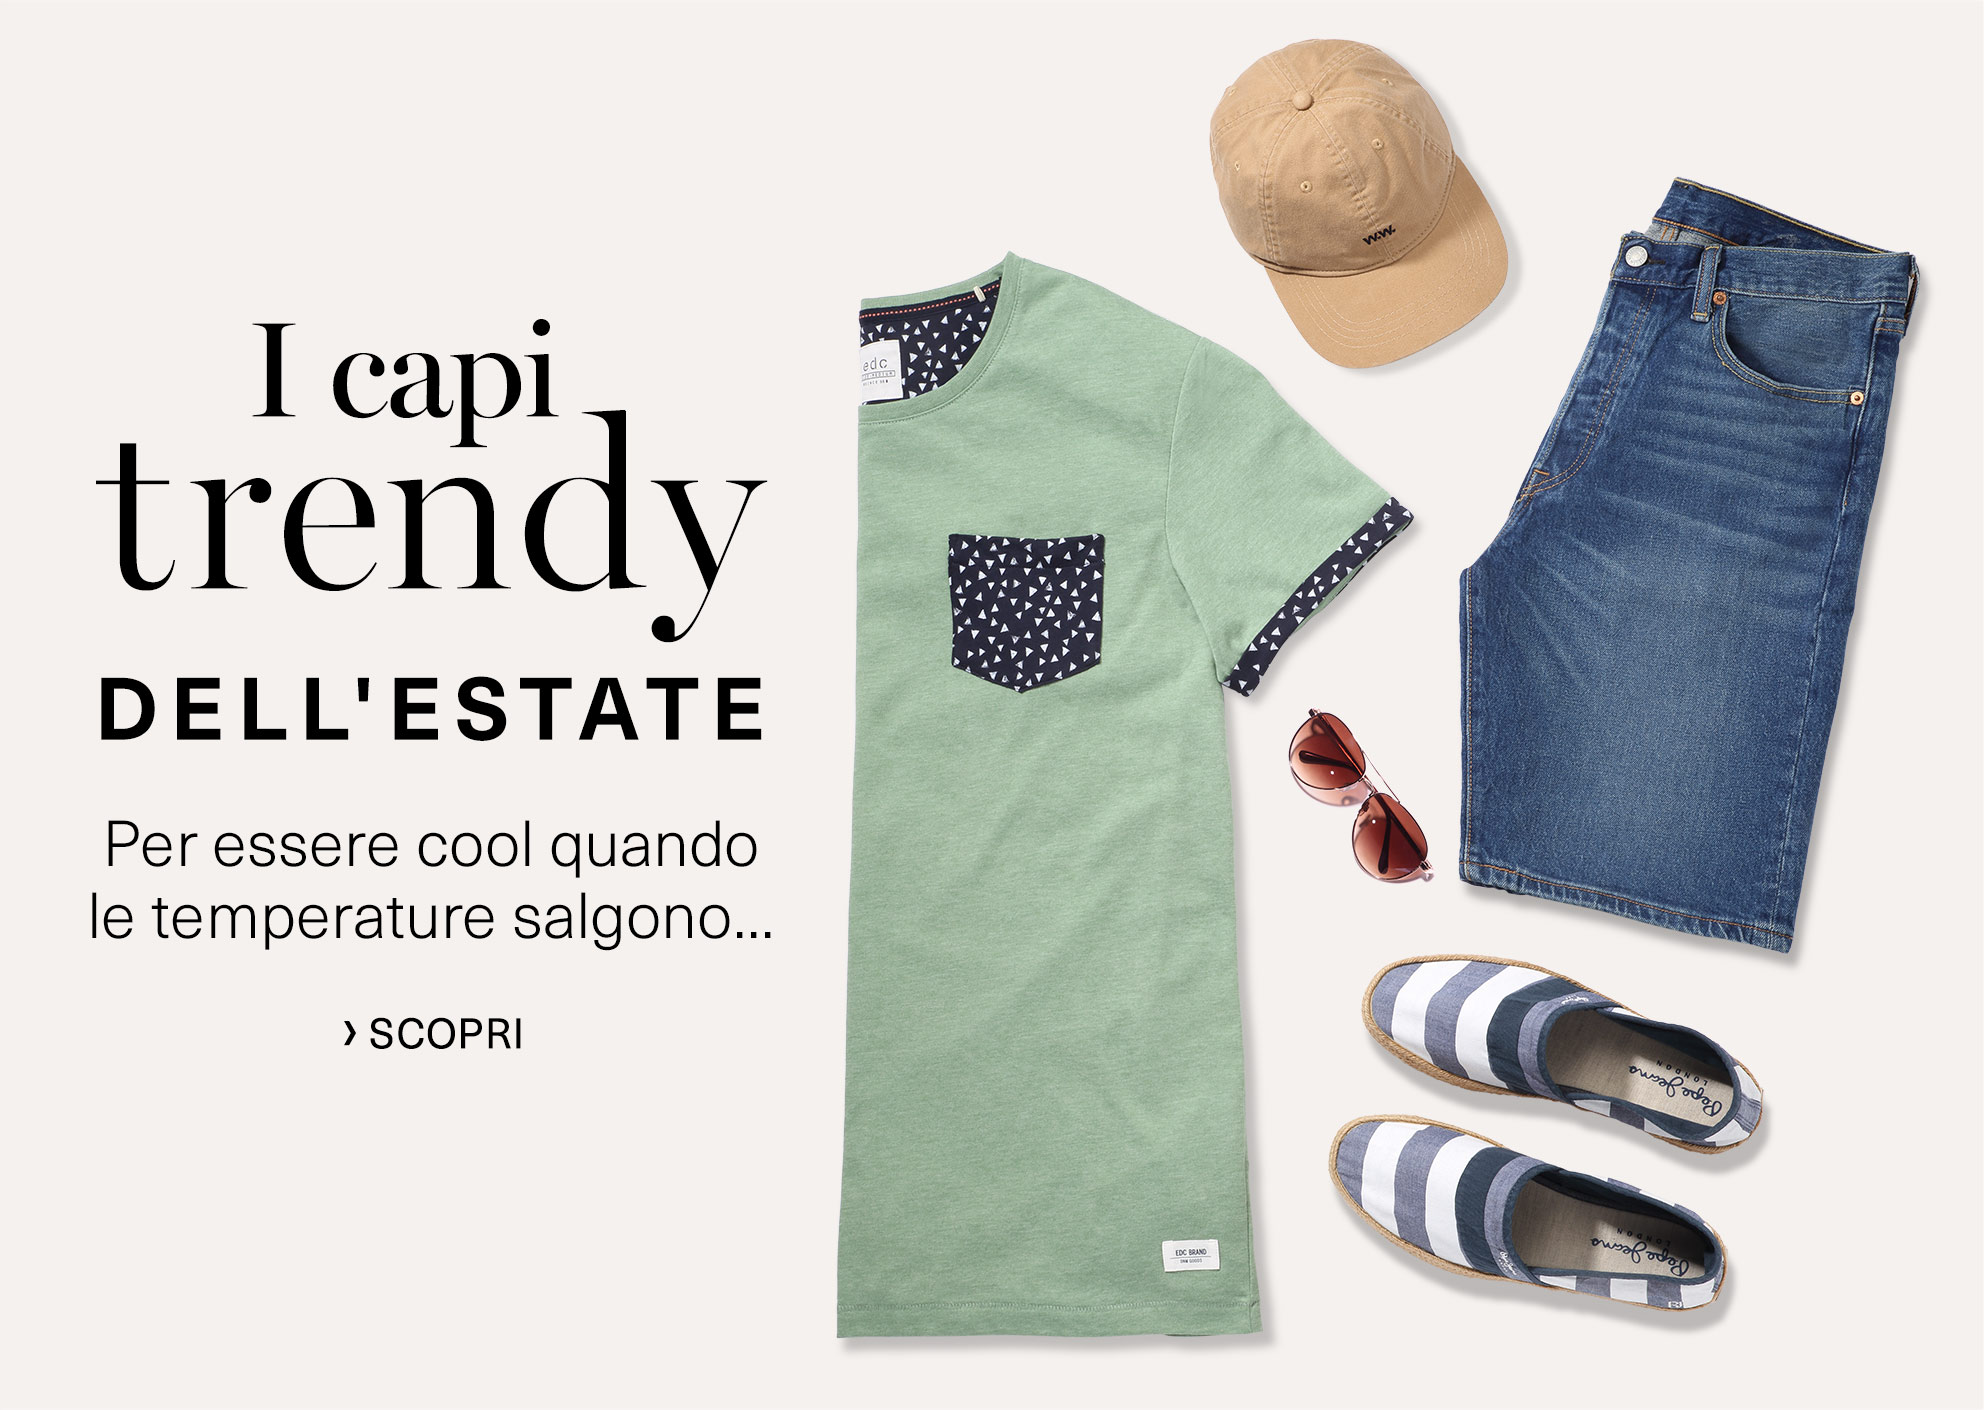 I capi trendy dell'estate